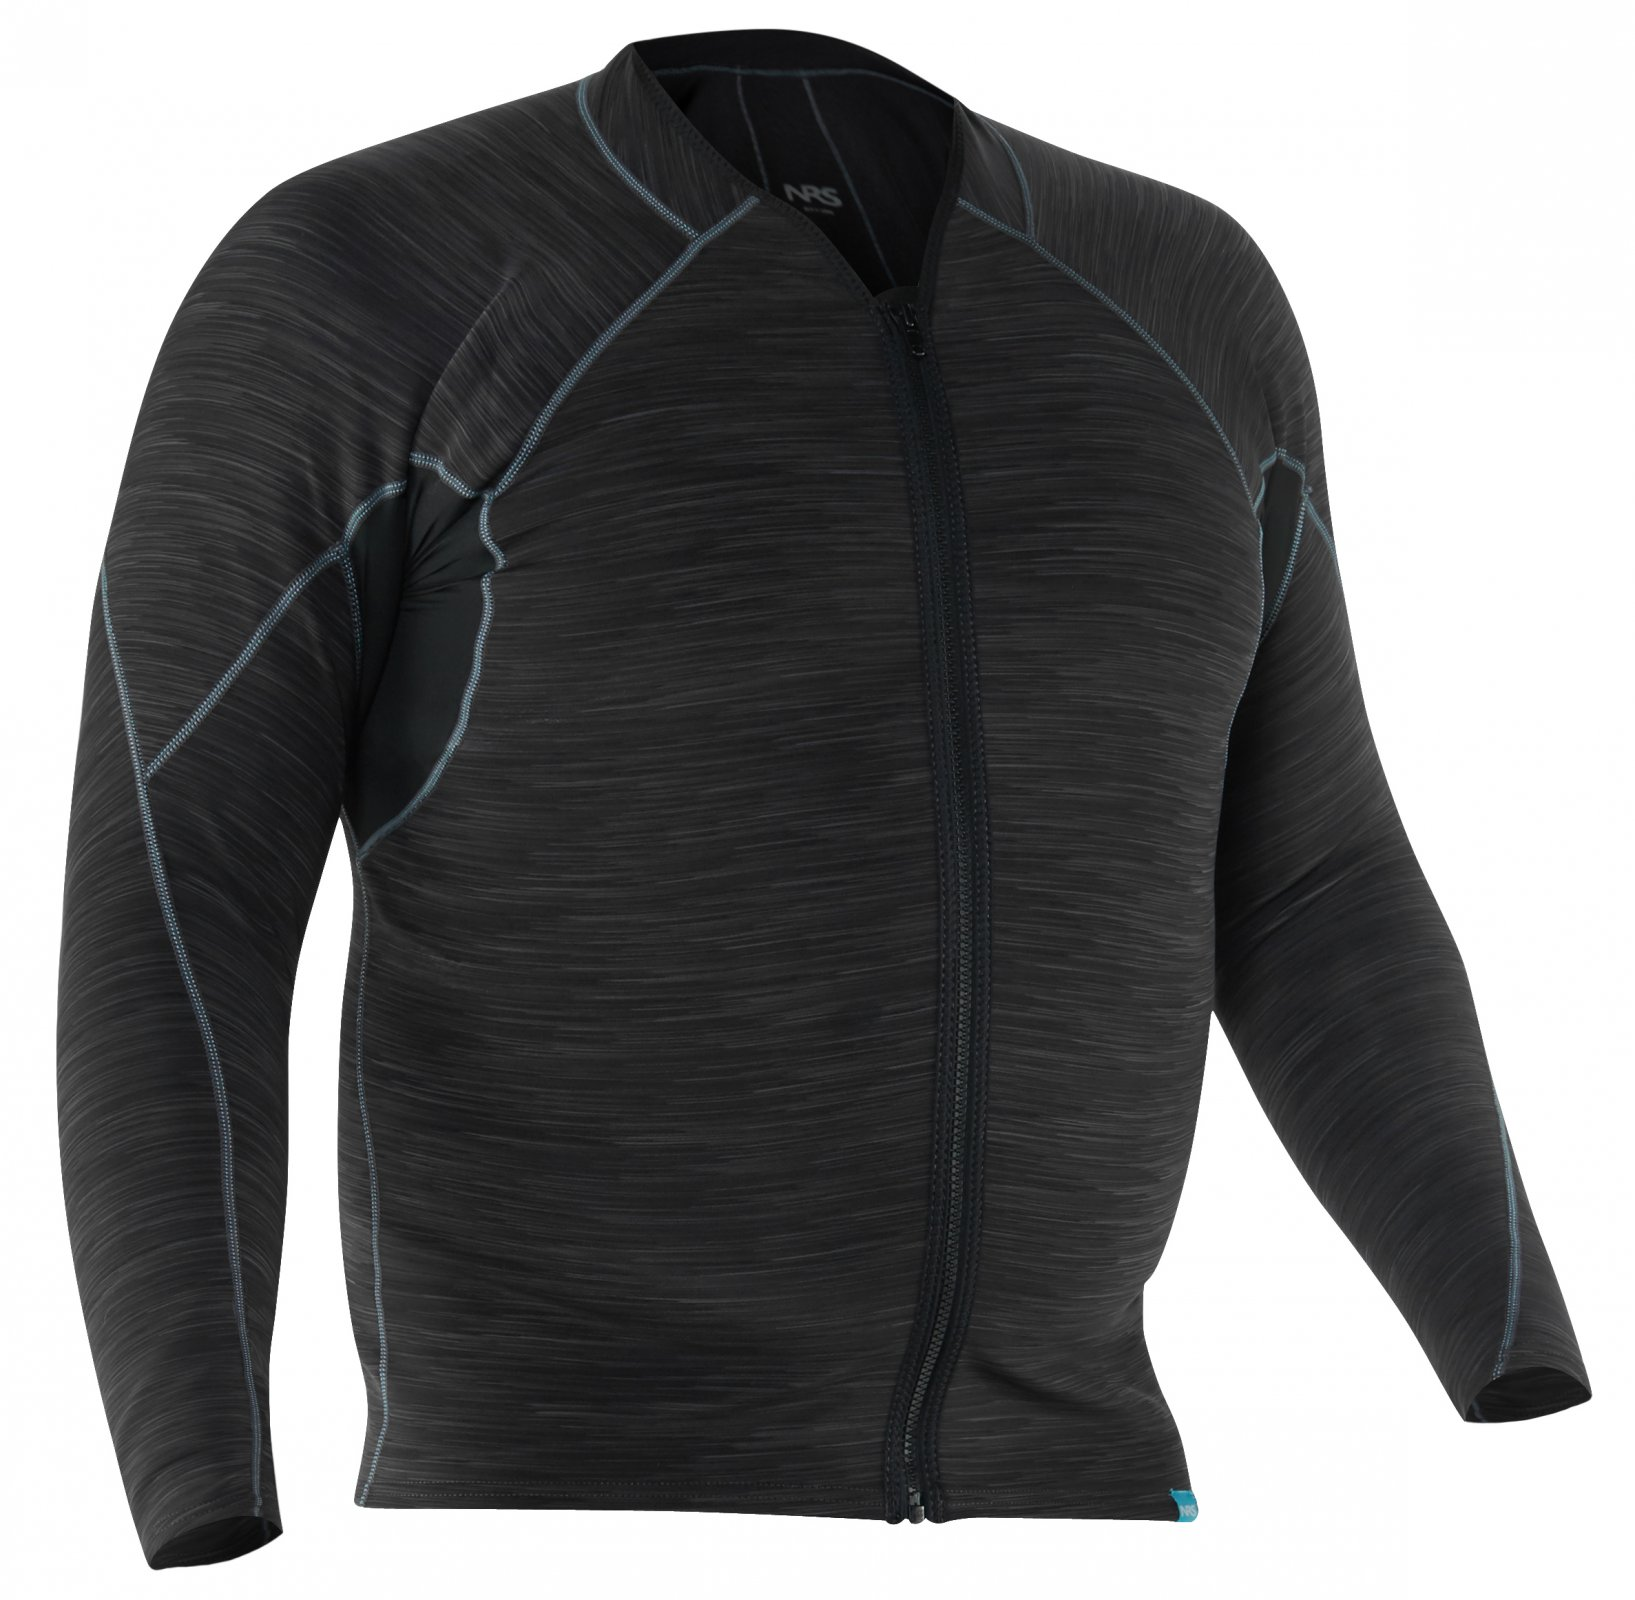 2018 NRS Men's Grizzly HydroSkin 0.5 Jacket